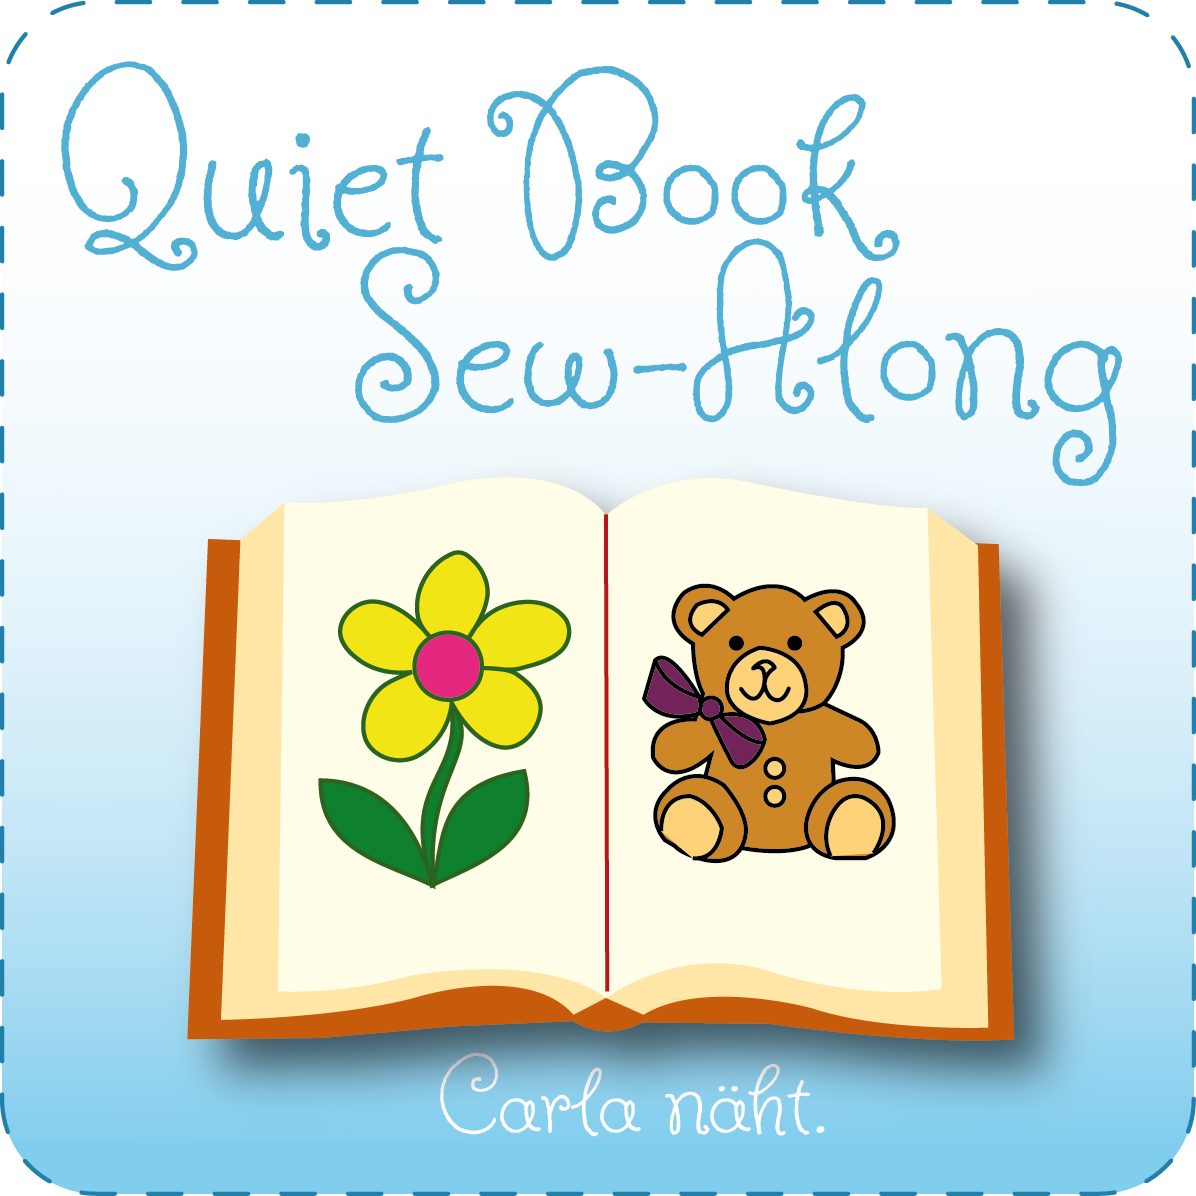 Quiet Book Sew-Along